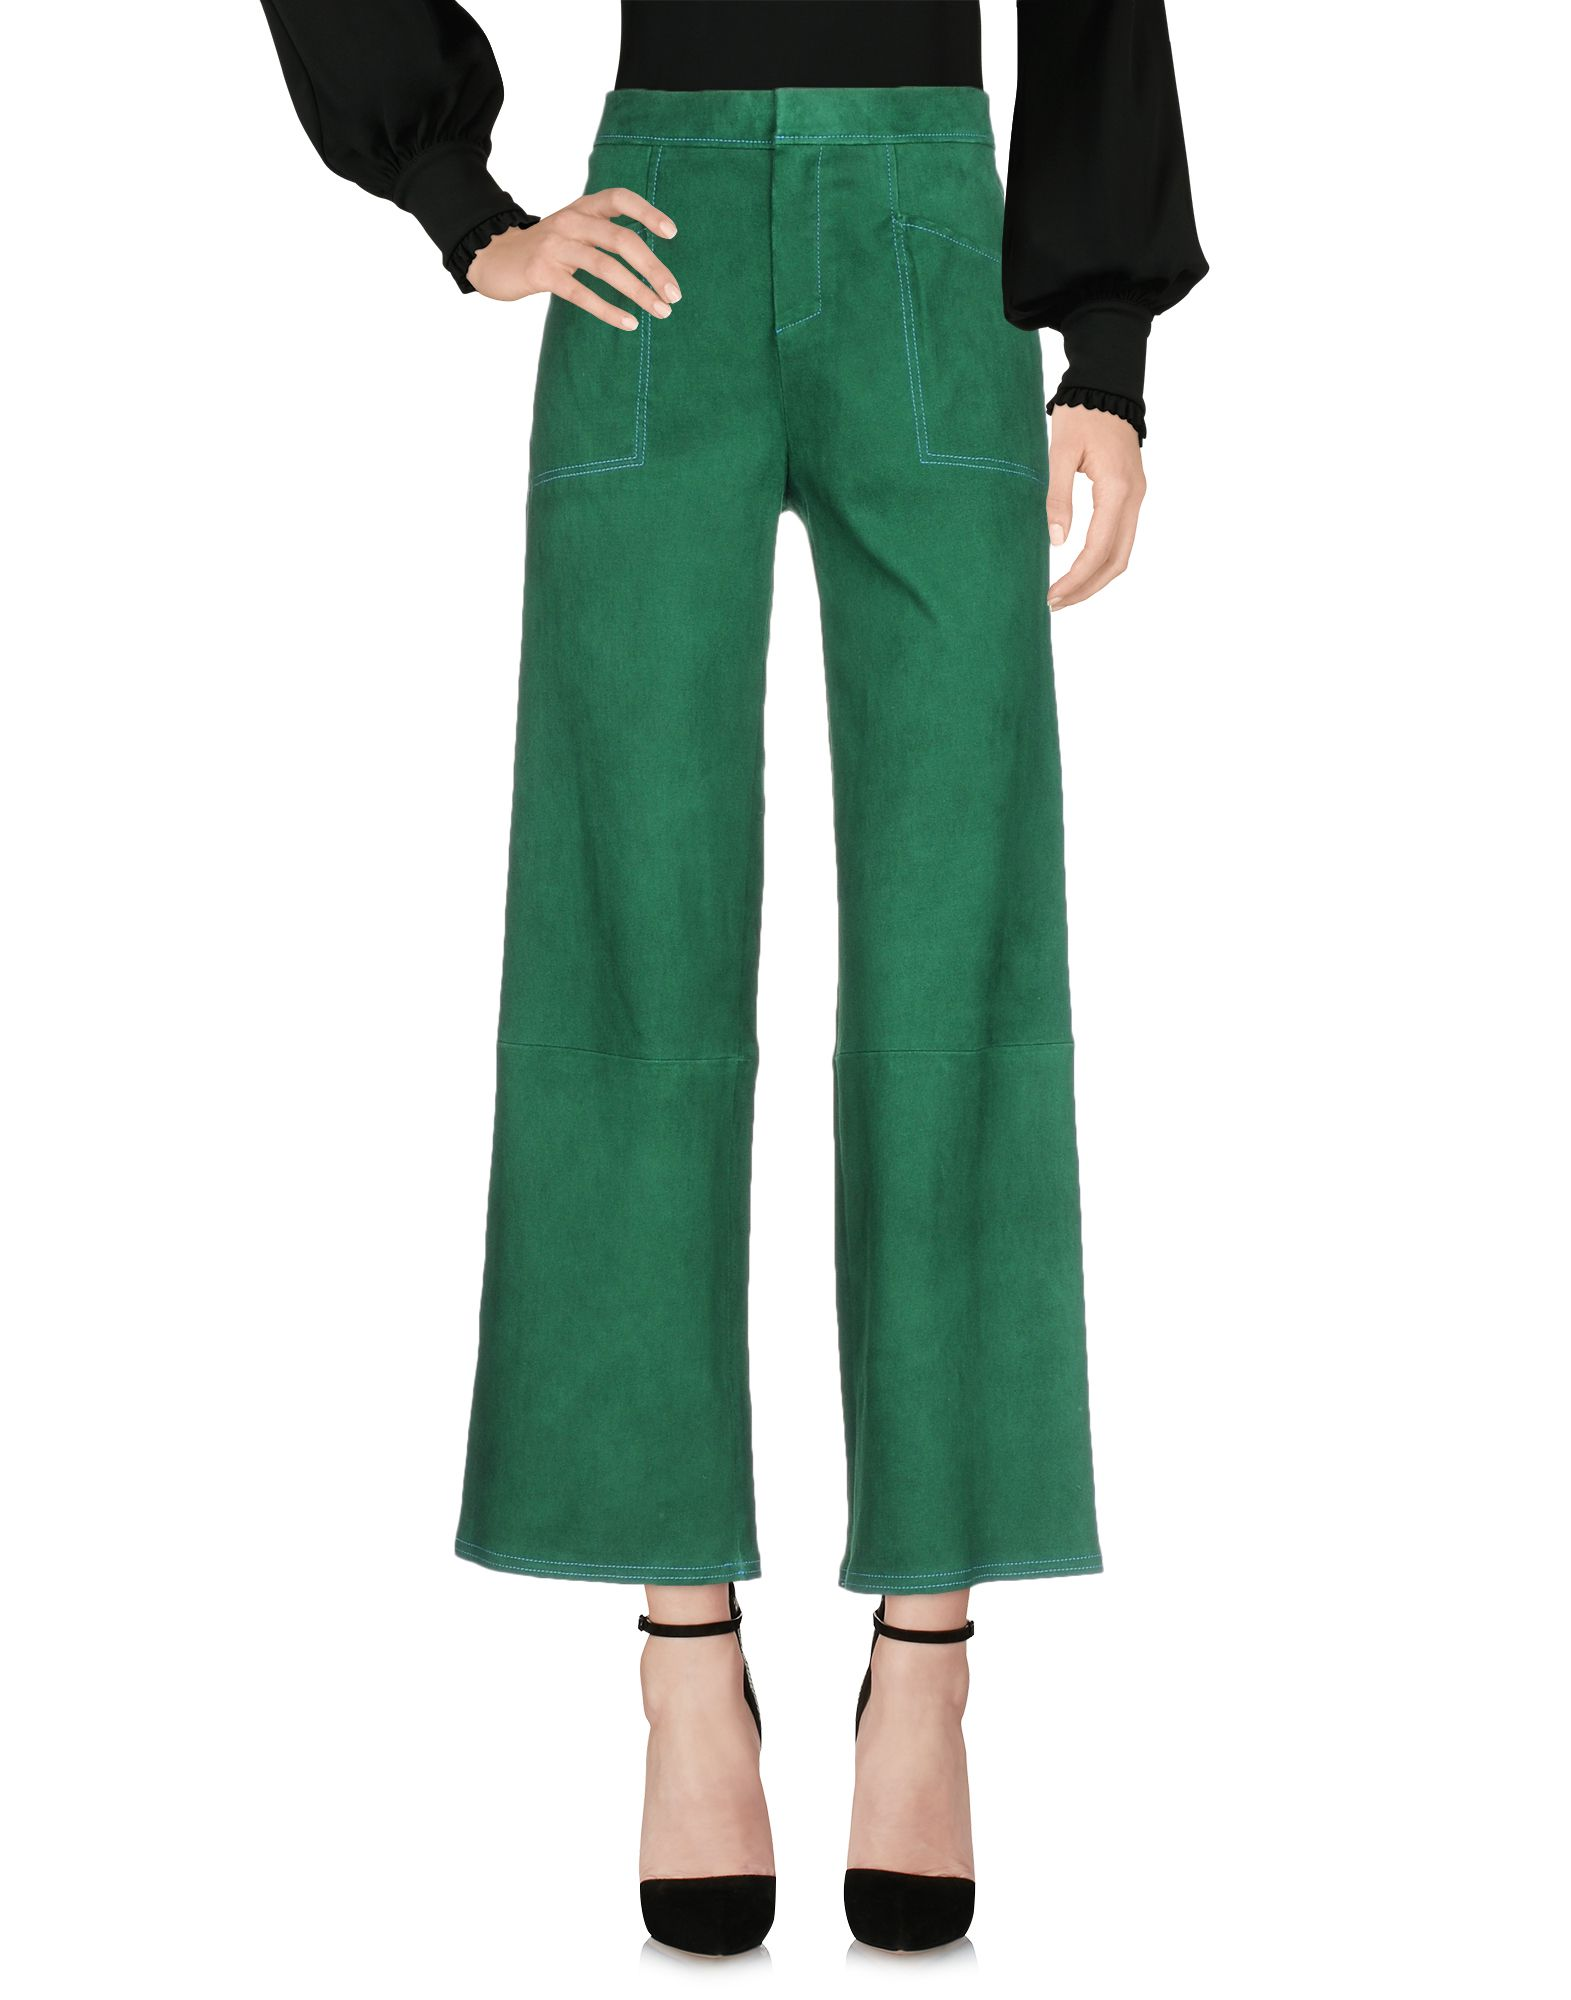 Pantalone Stouls Donna - Acquista online su aA0Nvey